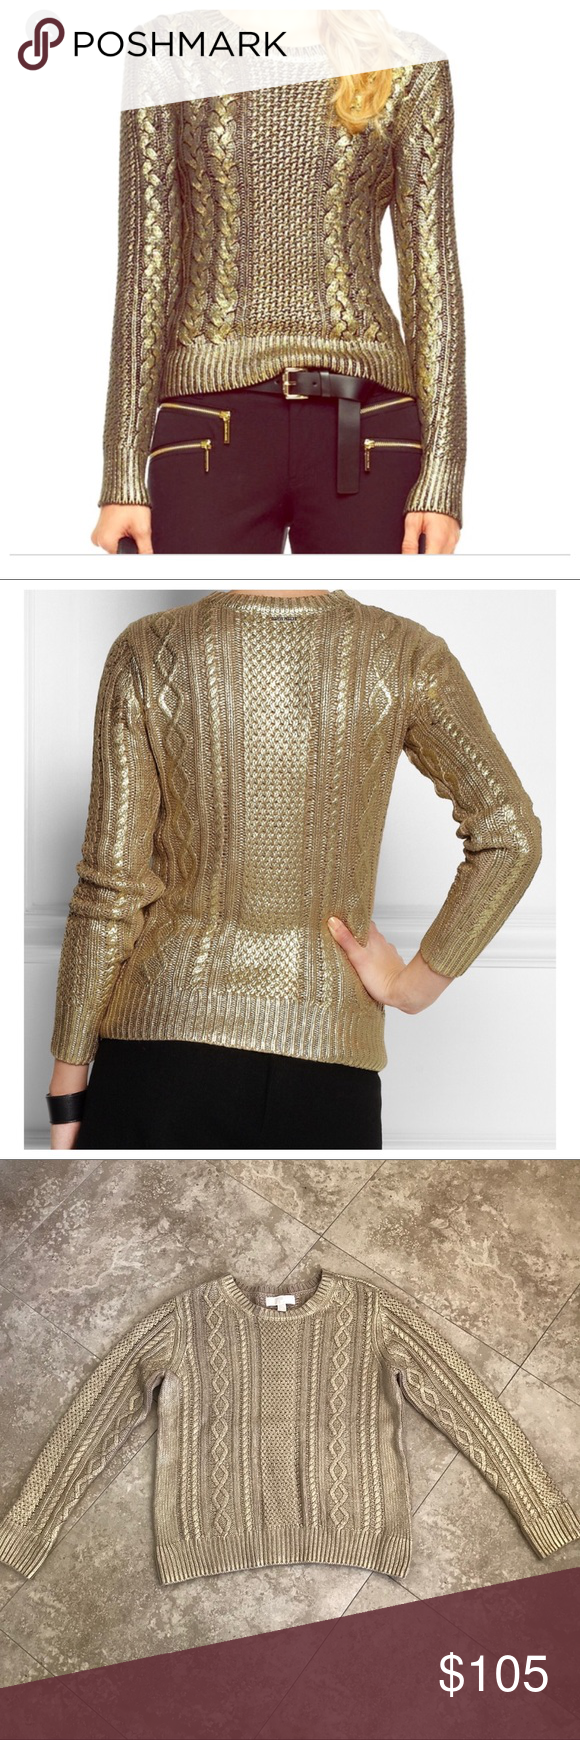 344add7634 Michael Kors gold coated cable sweater MICHAEL Michael Kors Metallic-coated  cable-knit sweater